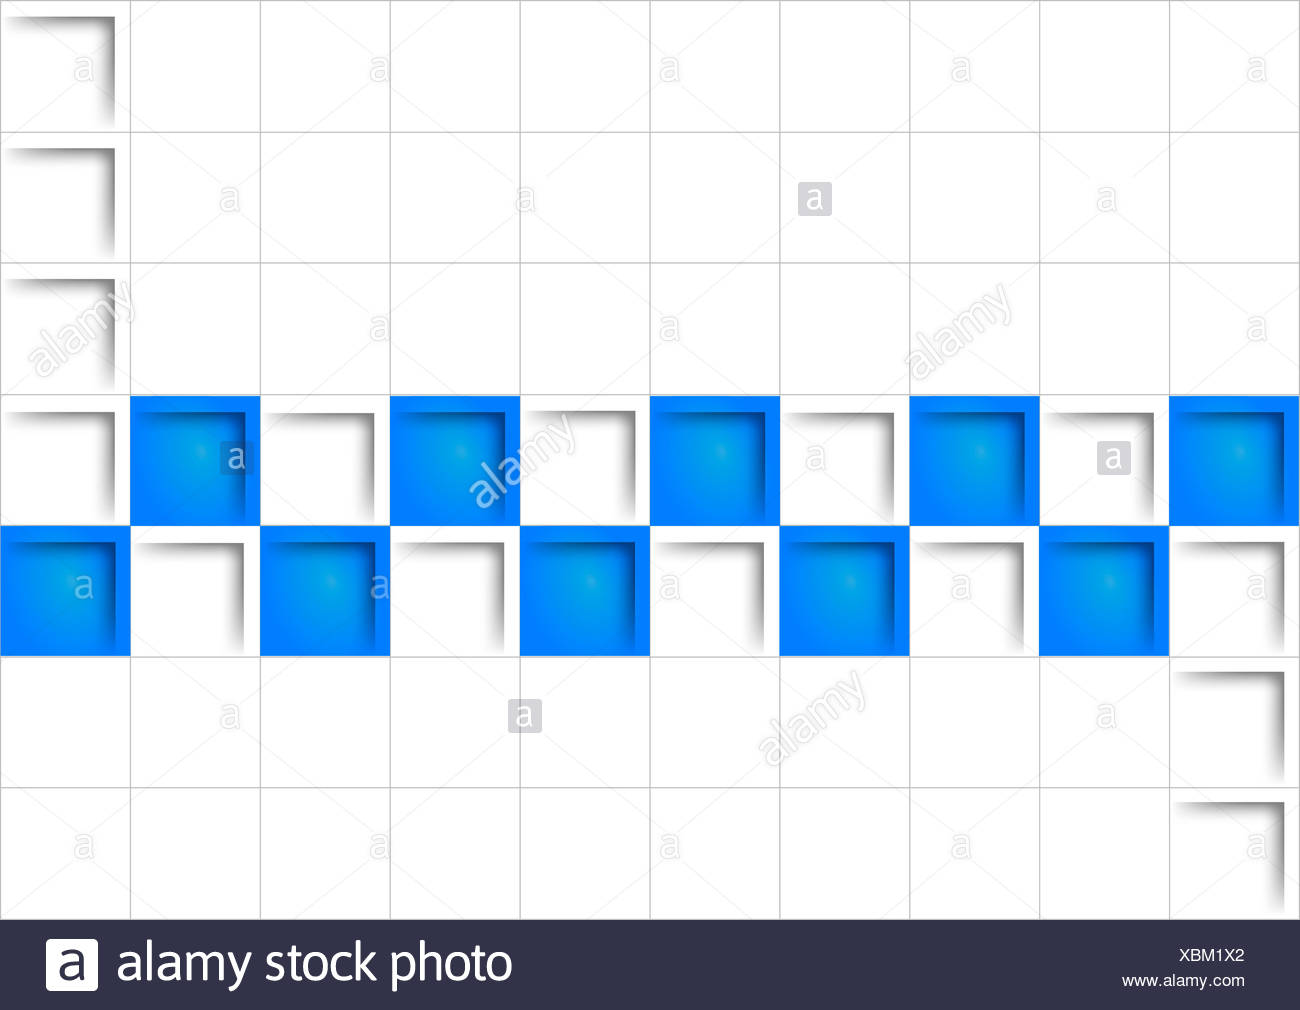 blue square - Stock Image